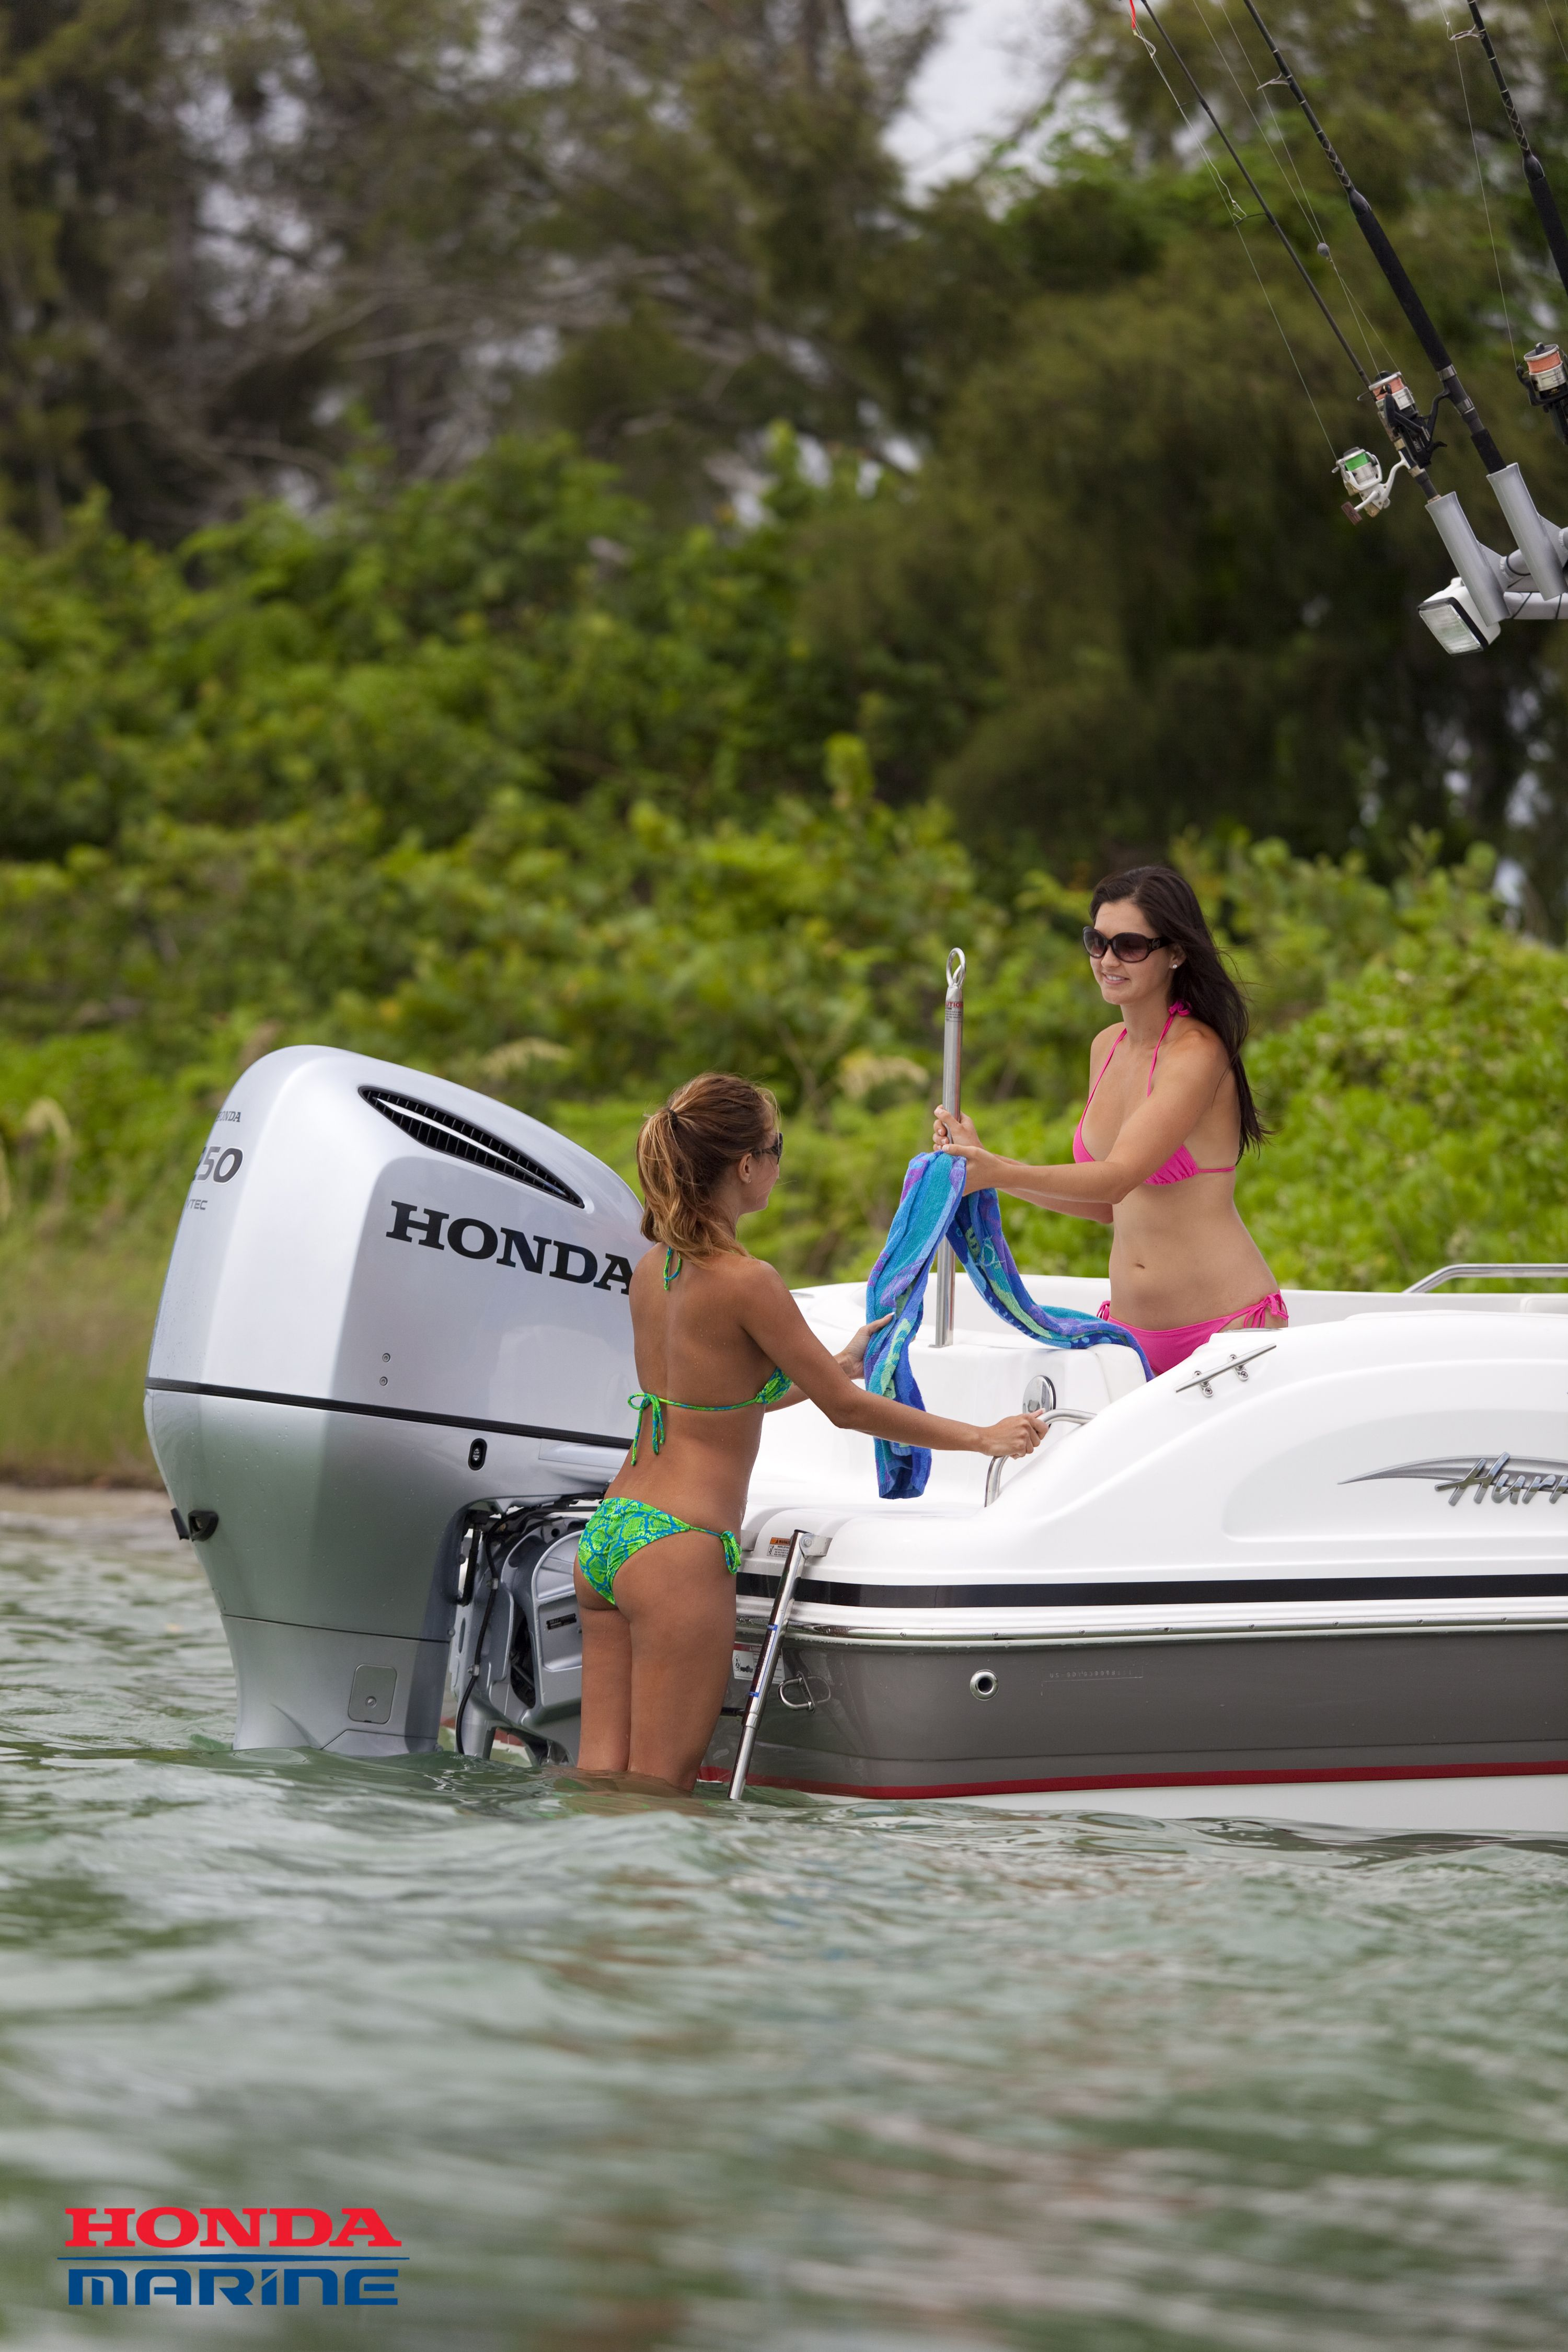 motors name moptor forums around jpg views click for forum image boat larger size atv version outboard honda garage old